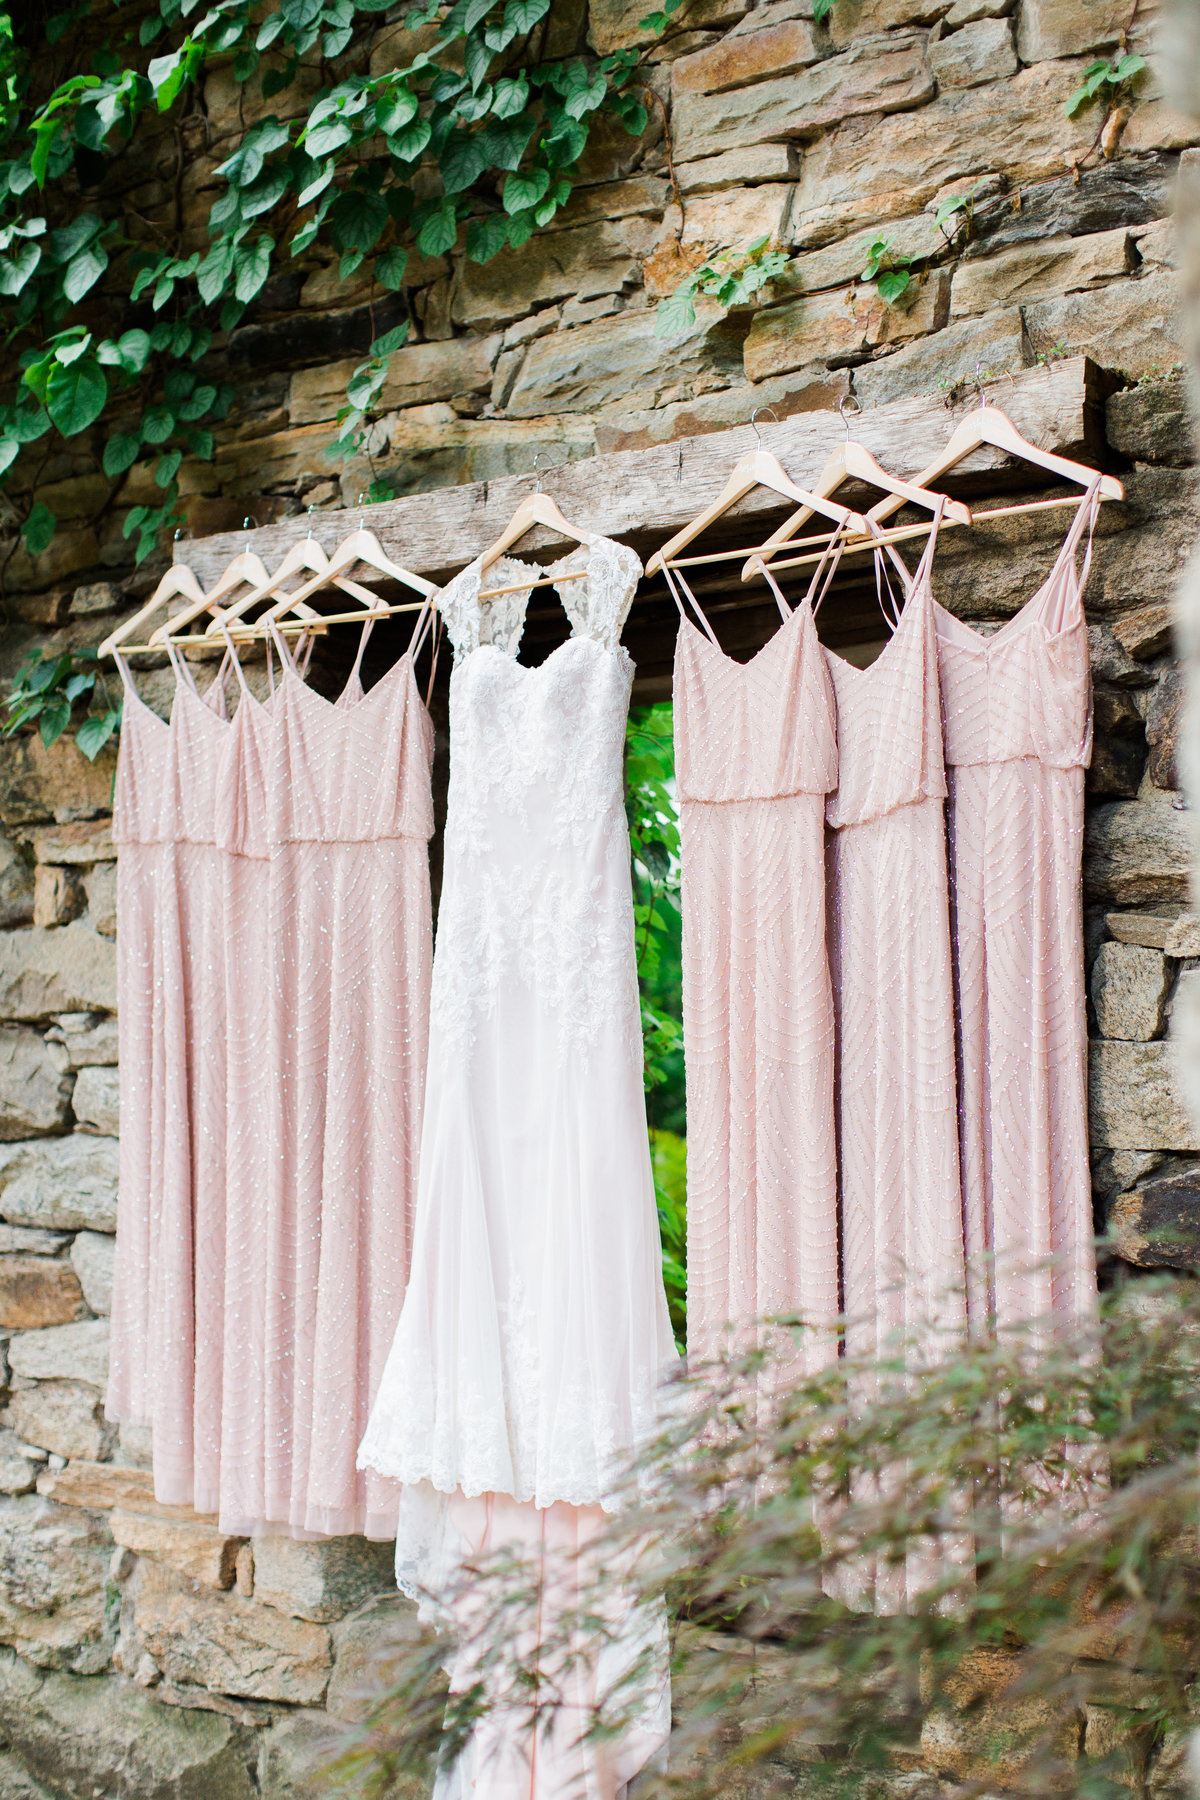 gown hanging on stone wall